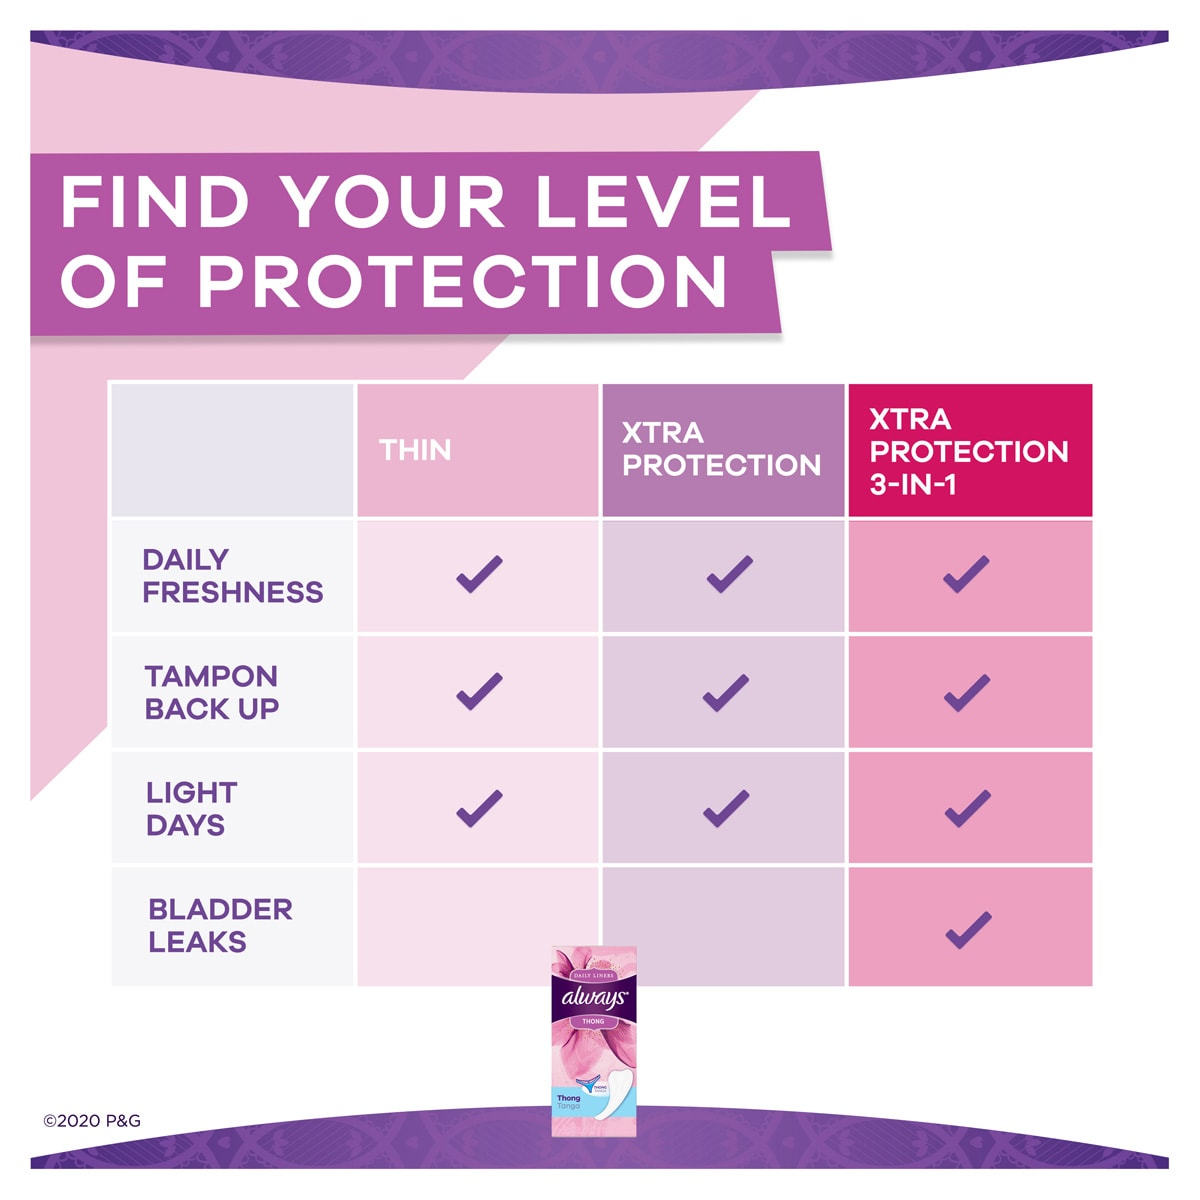 Always Daily Liner Thong Find Your Level of Protection